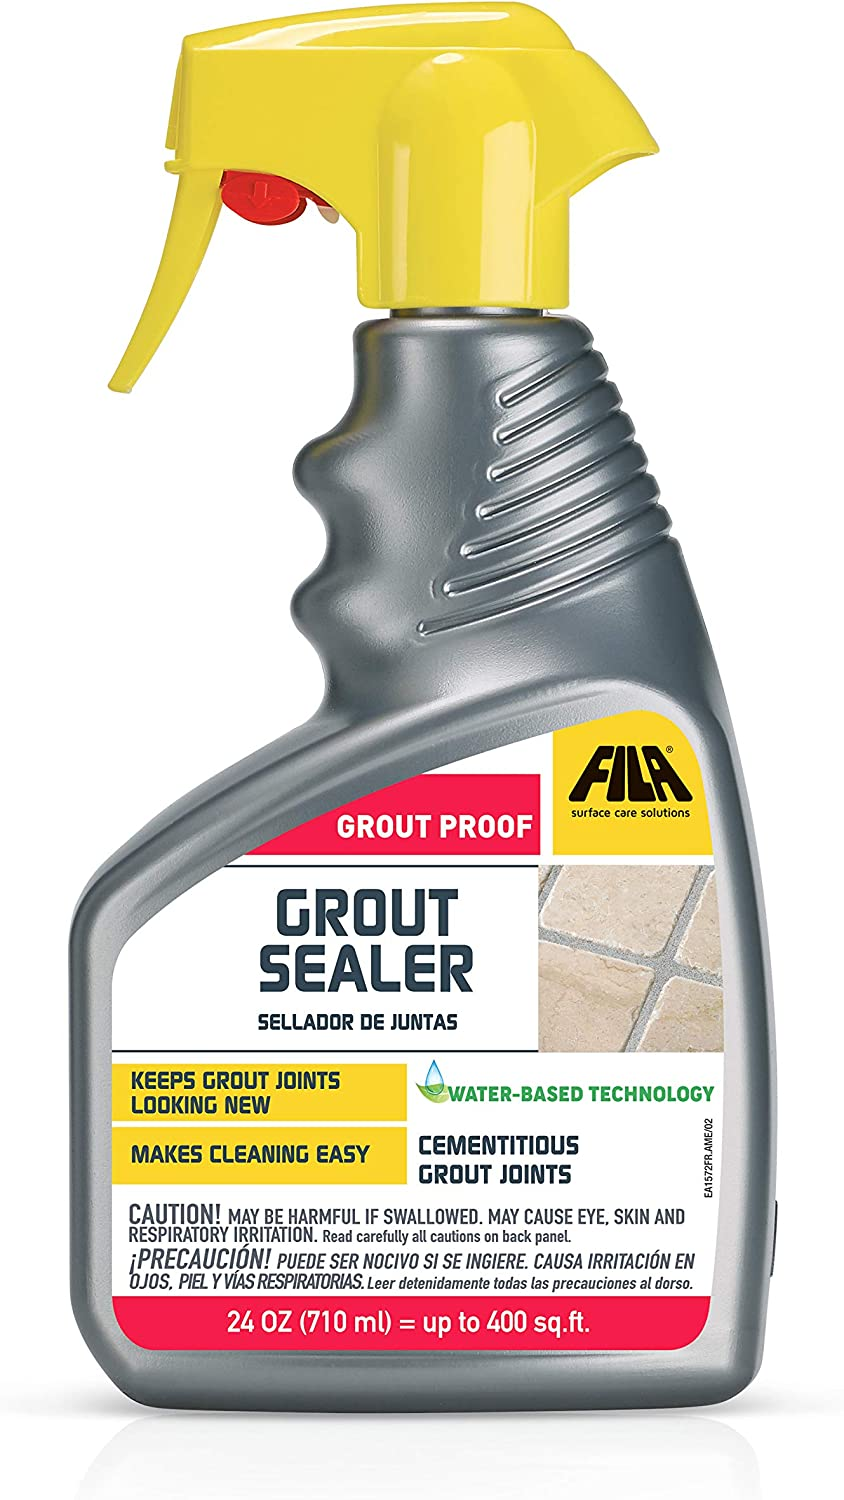 FILA Grout Sealer Spray Filagrout Proof 7 OZ, Grout Sealer for Tile and  Stone, Eco-friendly